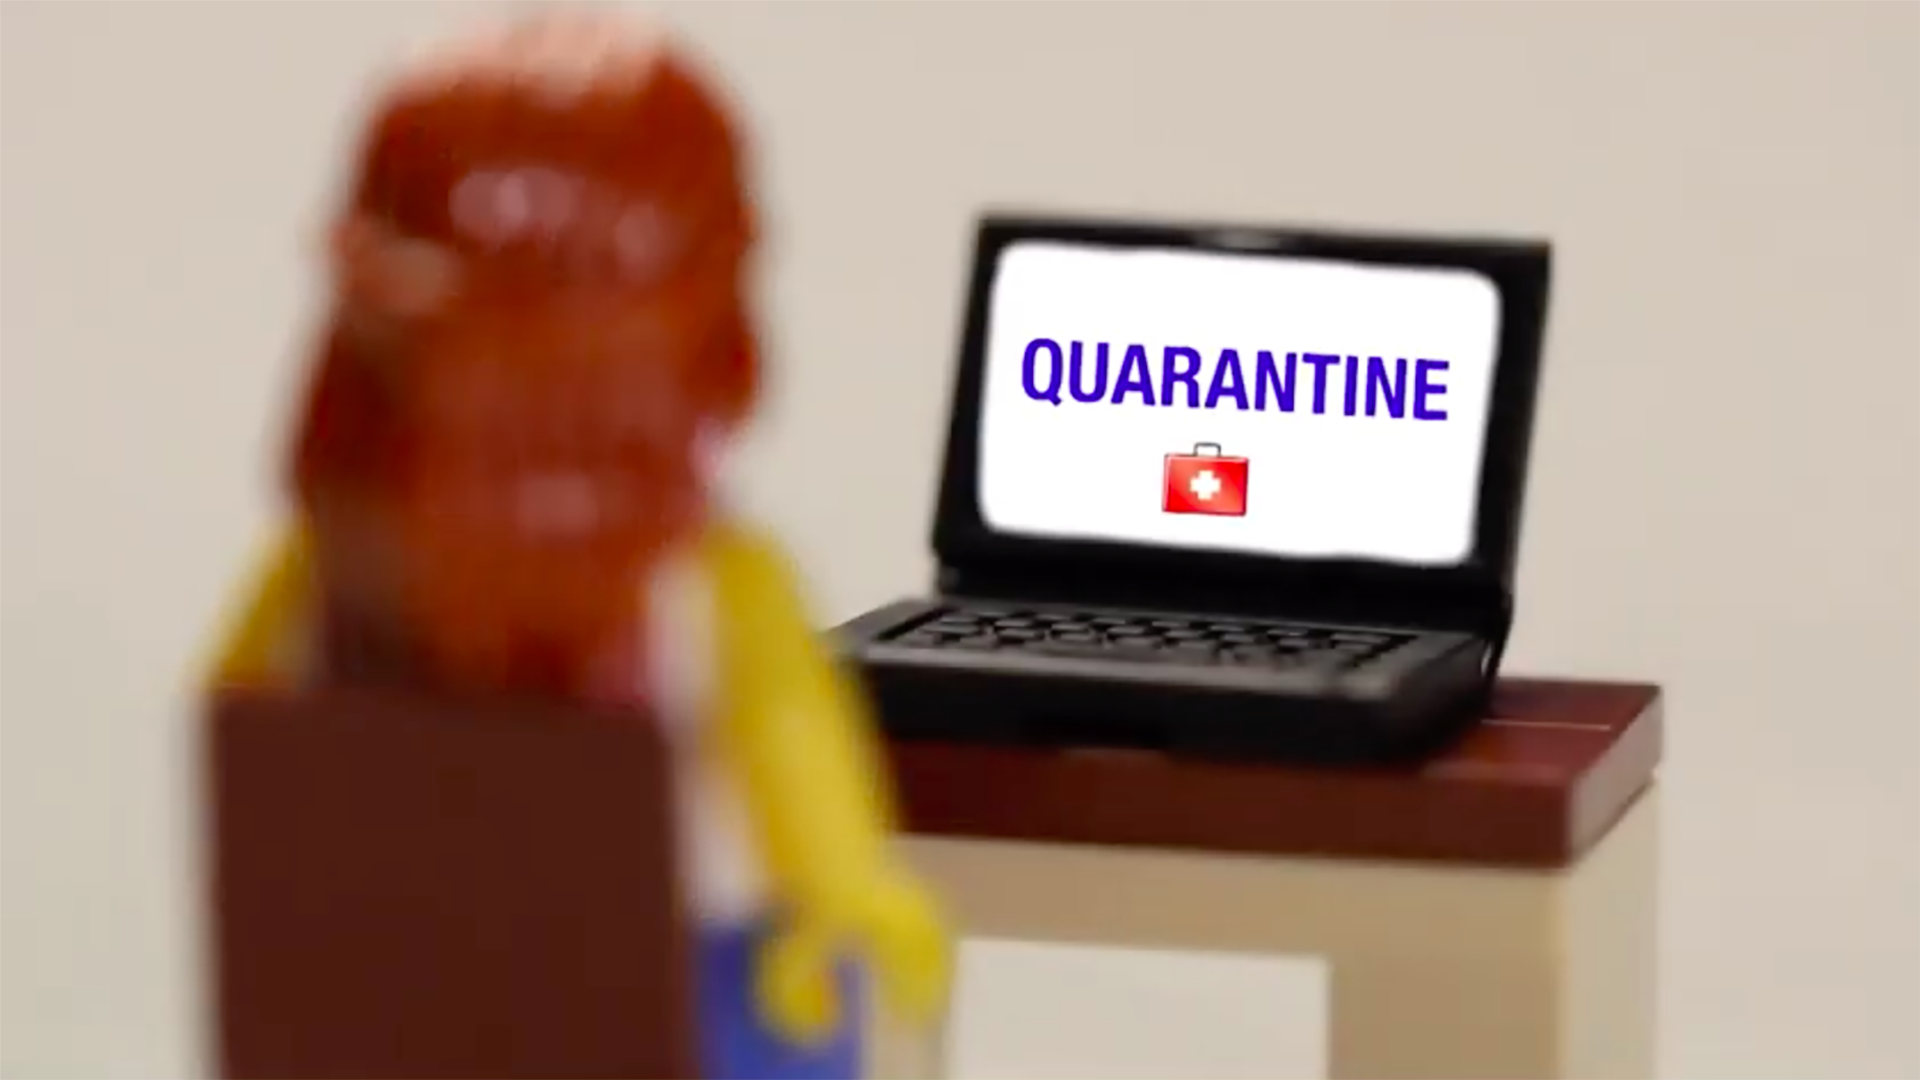 lego person looking at TV during quarantine